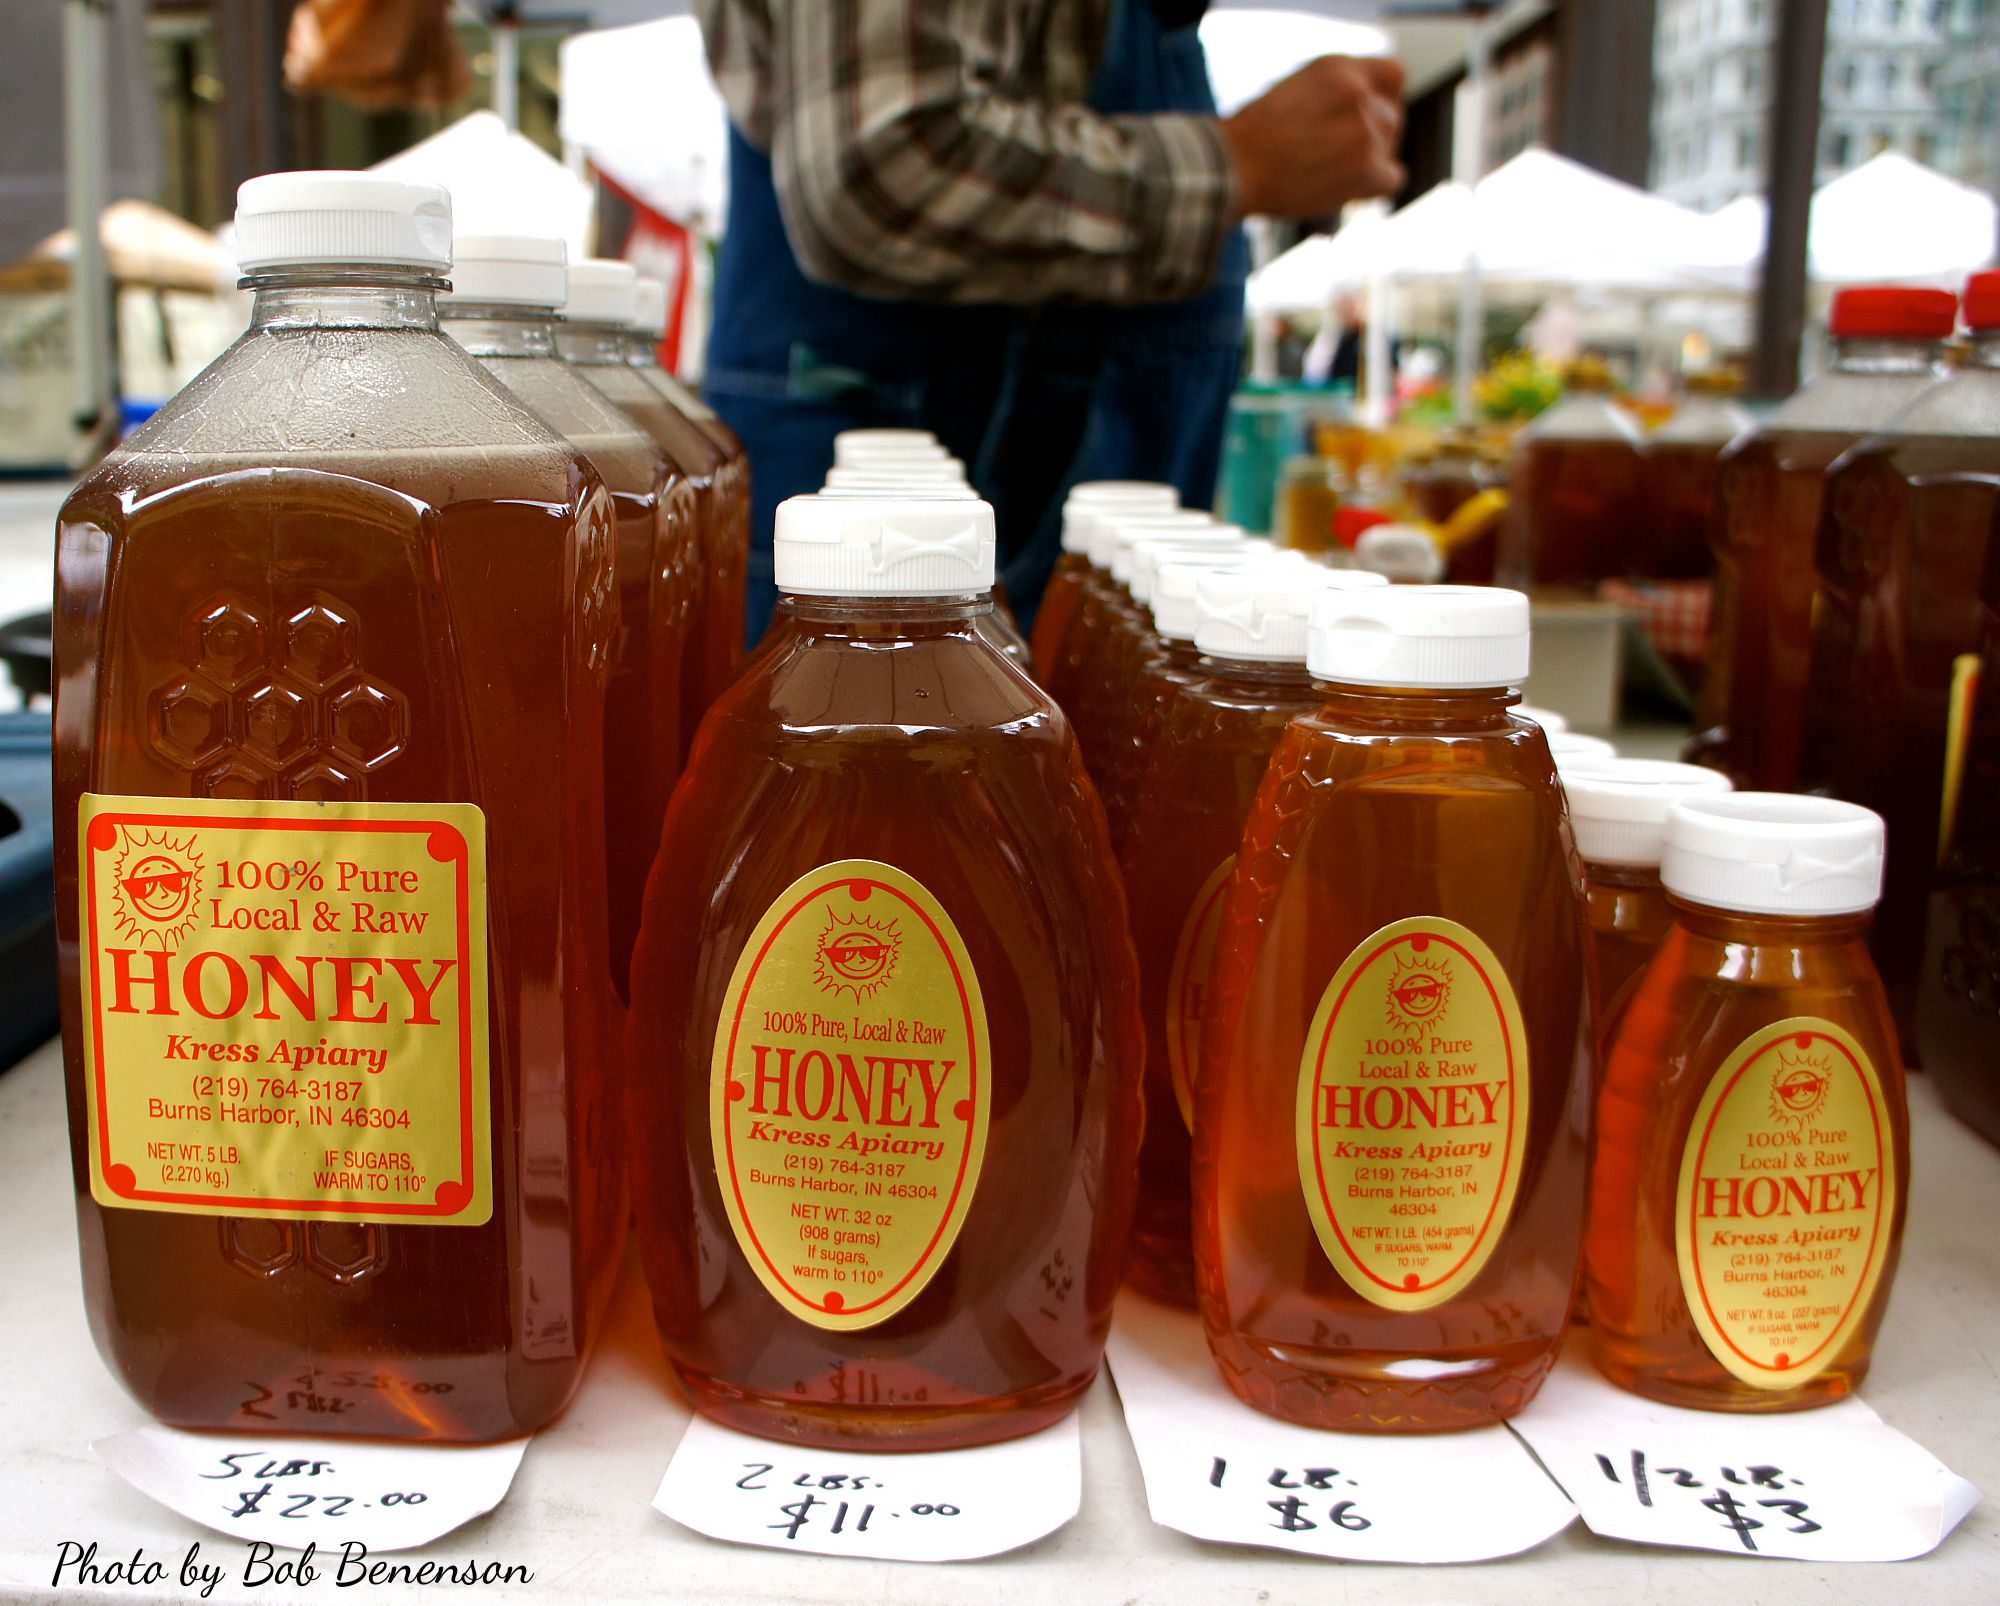 Honey from Kress Apiary of Burns Harbor, Ind., at the Daley Plaza Farmers Market in Chicago